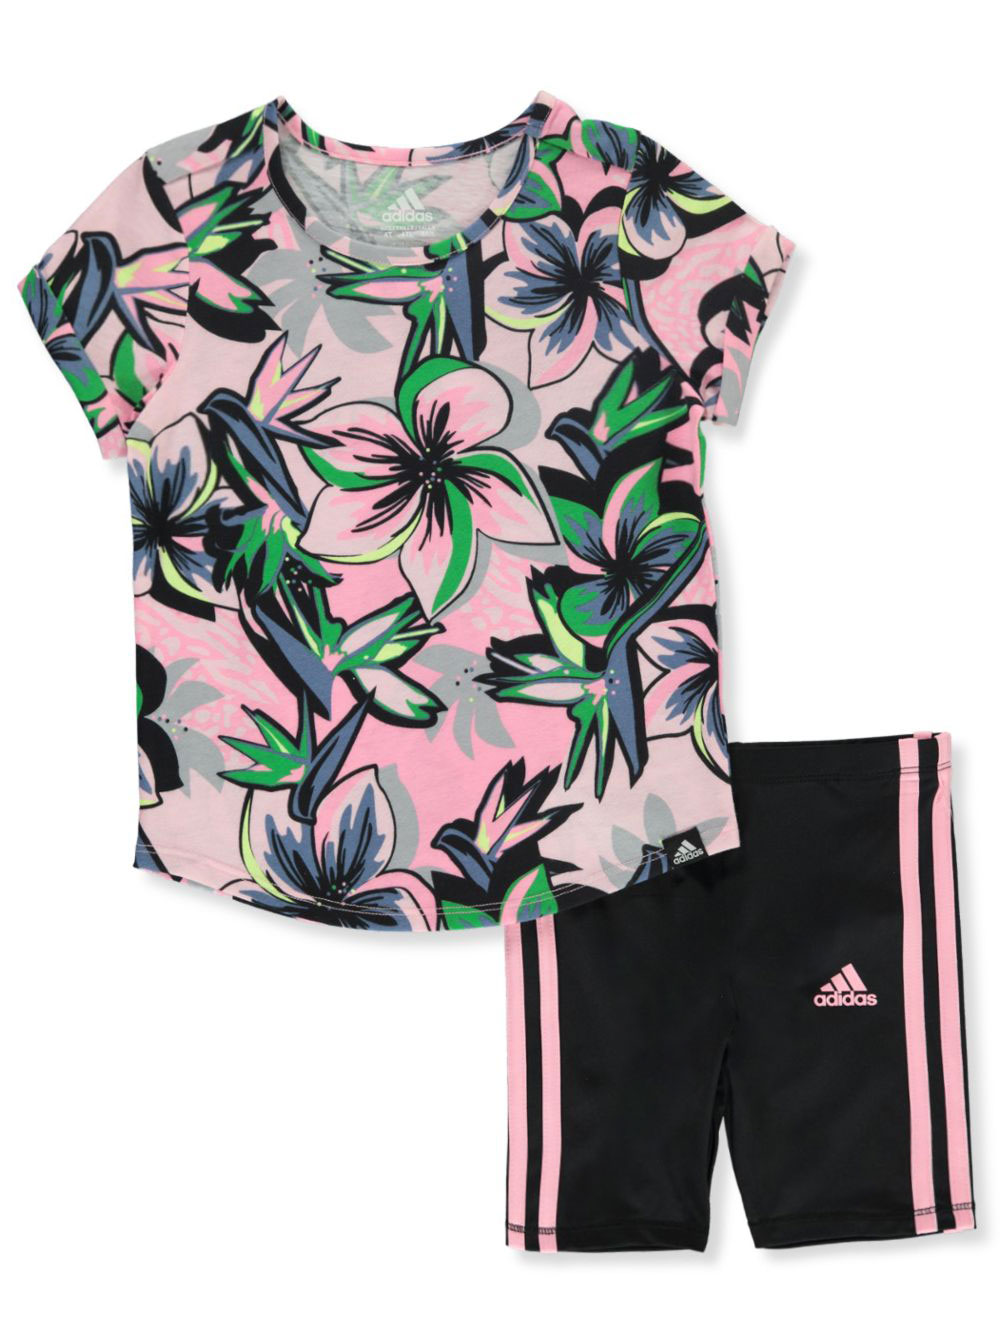 Girls' 2-Piece Bike Shorts Set Outfit